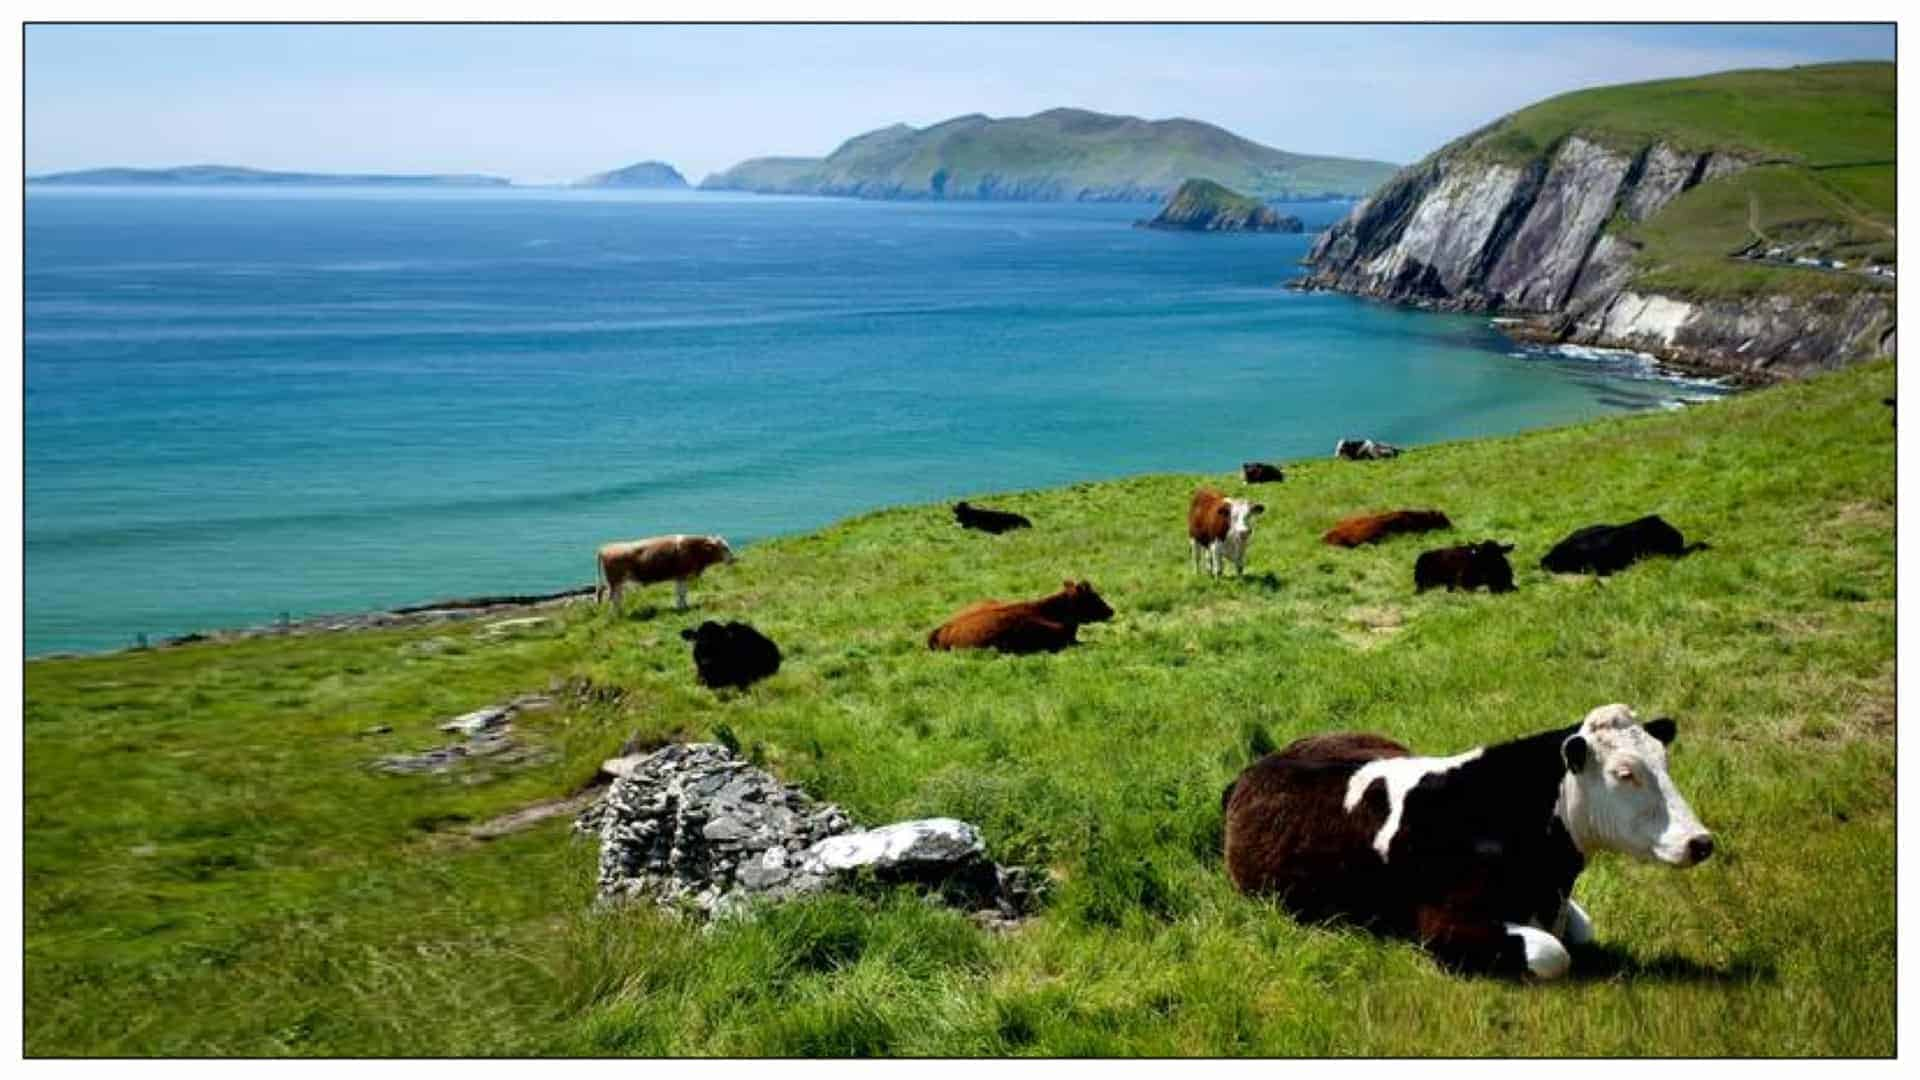 A group of cows scattered across a lush green hillside sloping downwards into a vibrant blue ocean, the visual embodiment of idealized animal agriculture and human practices.